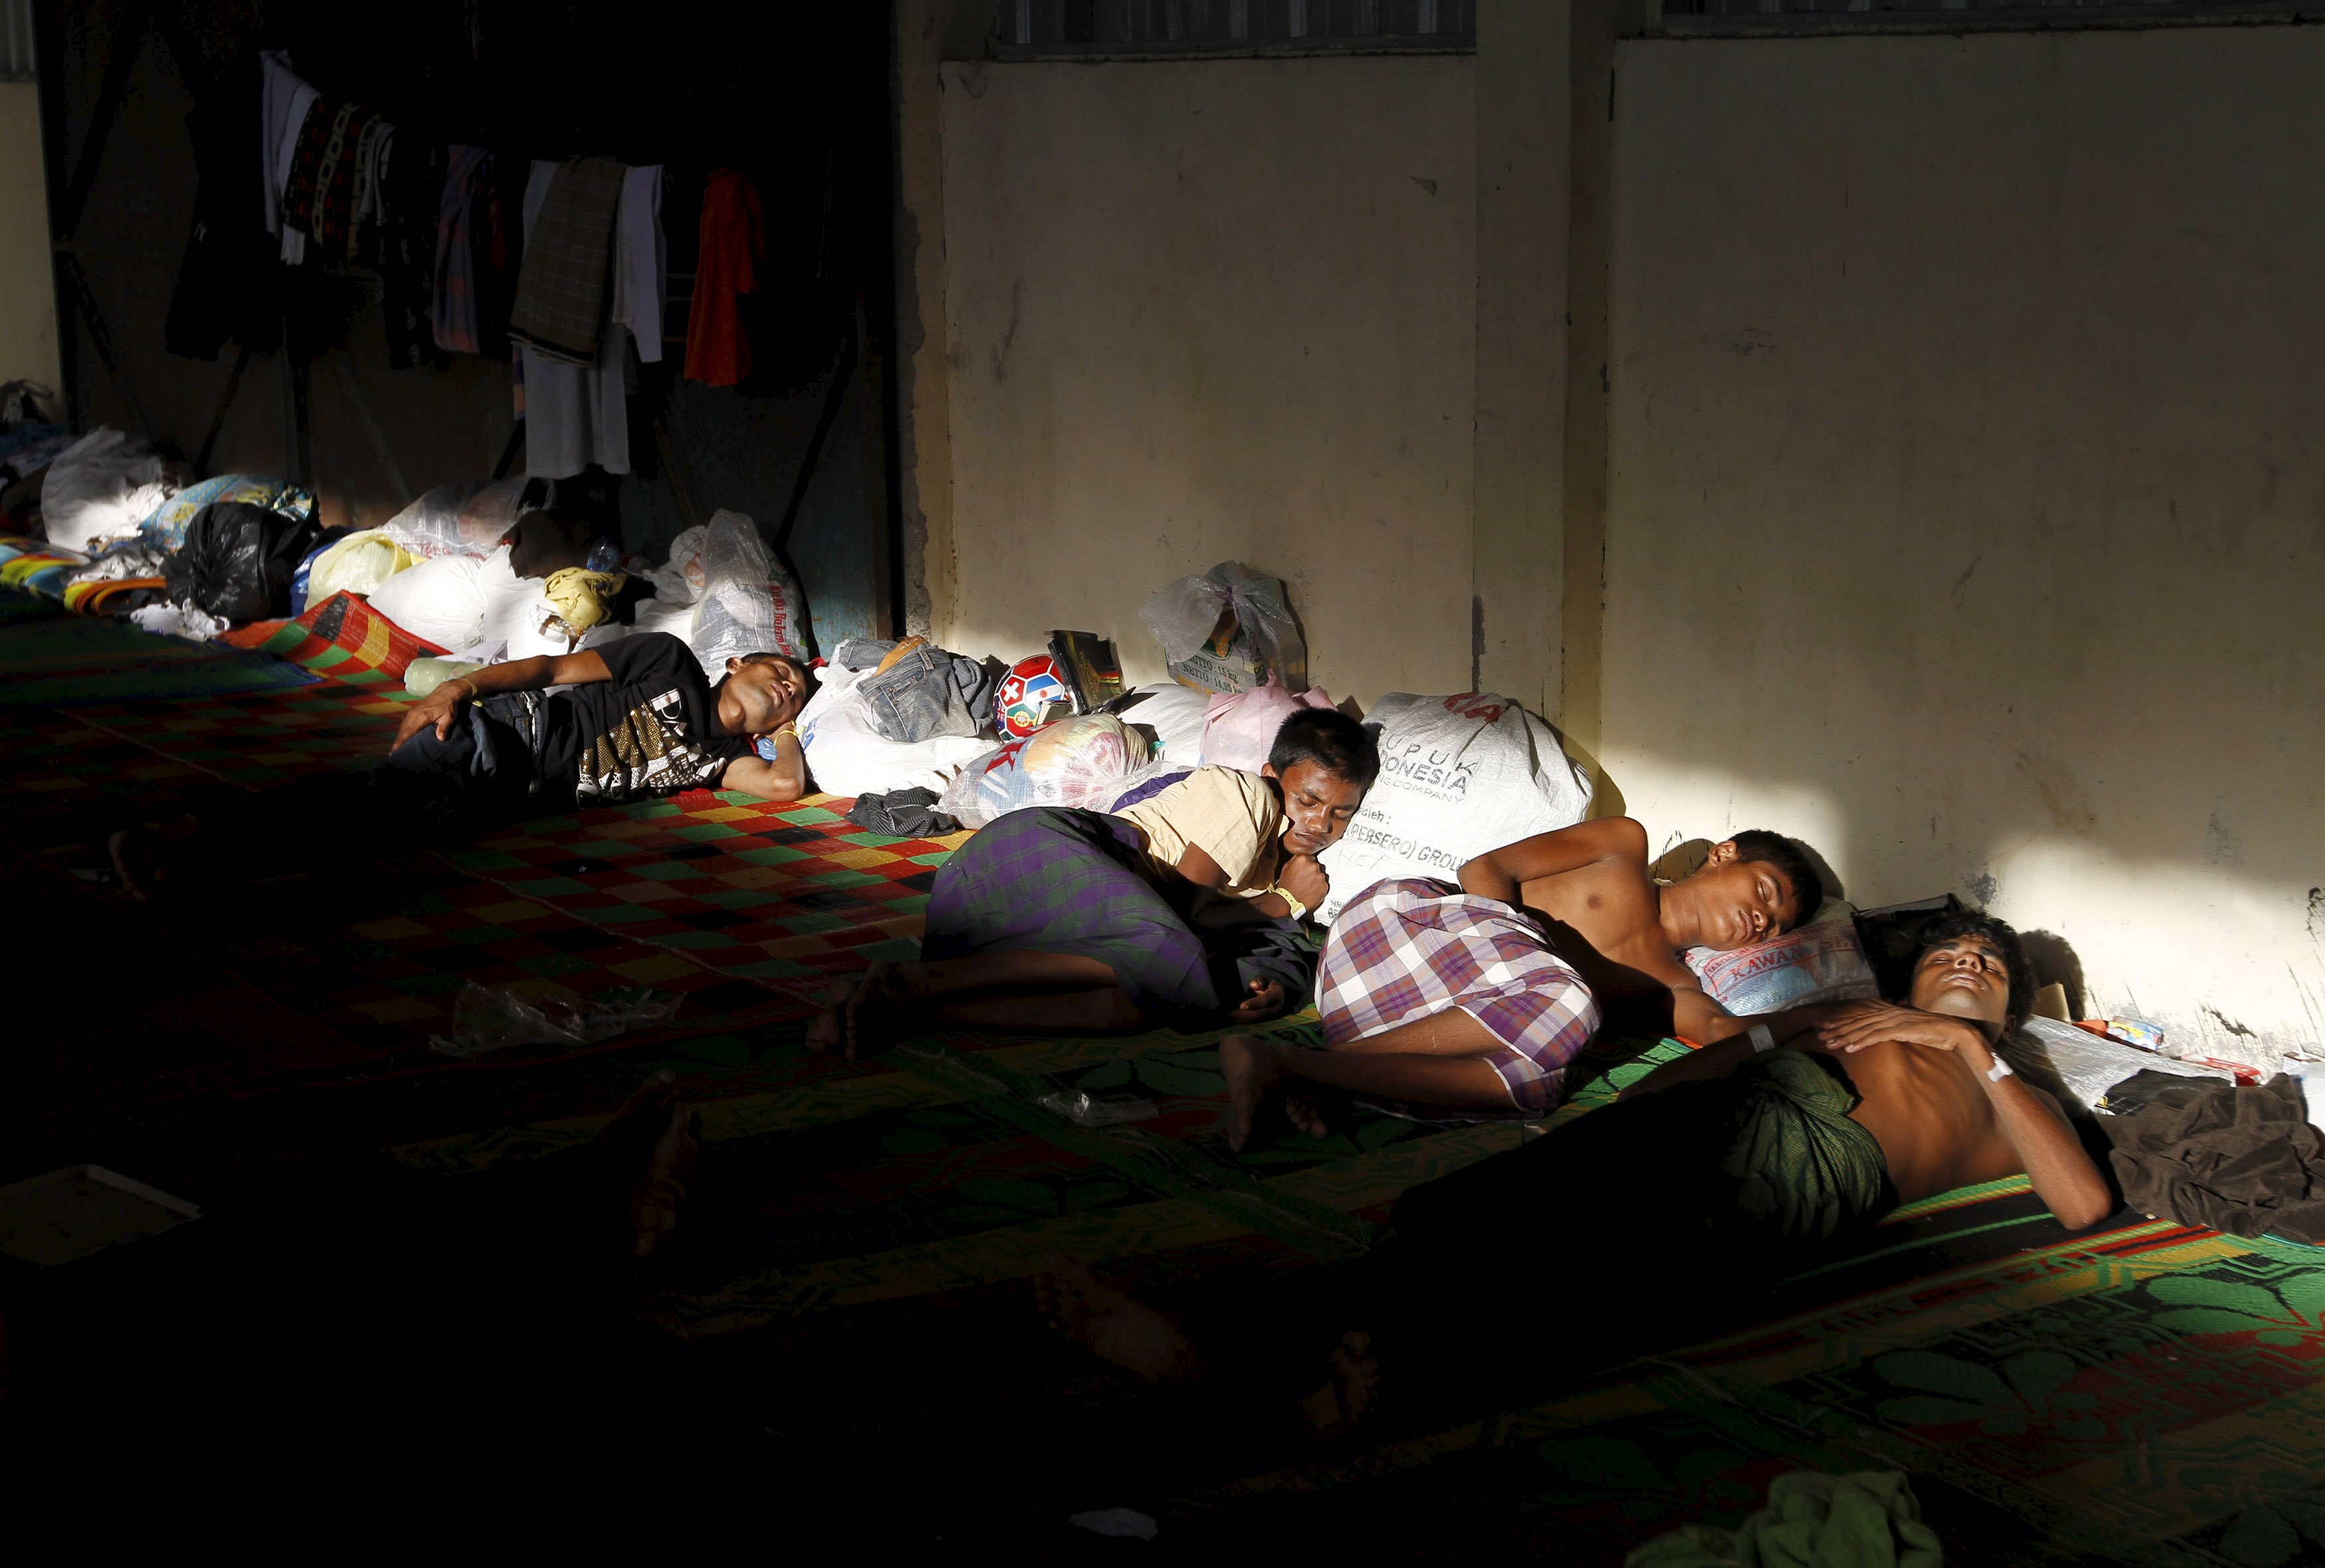 Rohingya Refugees in Aceh, Indonesia: Hostile Hospitality